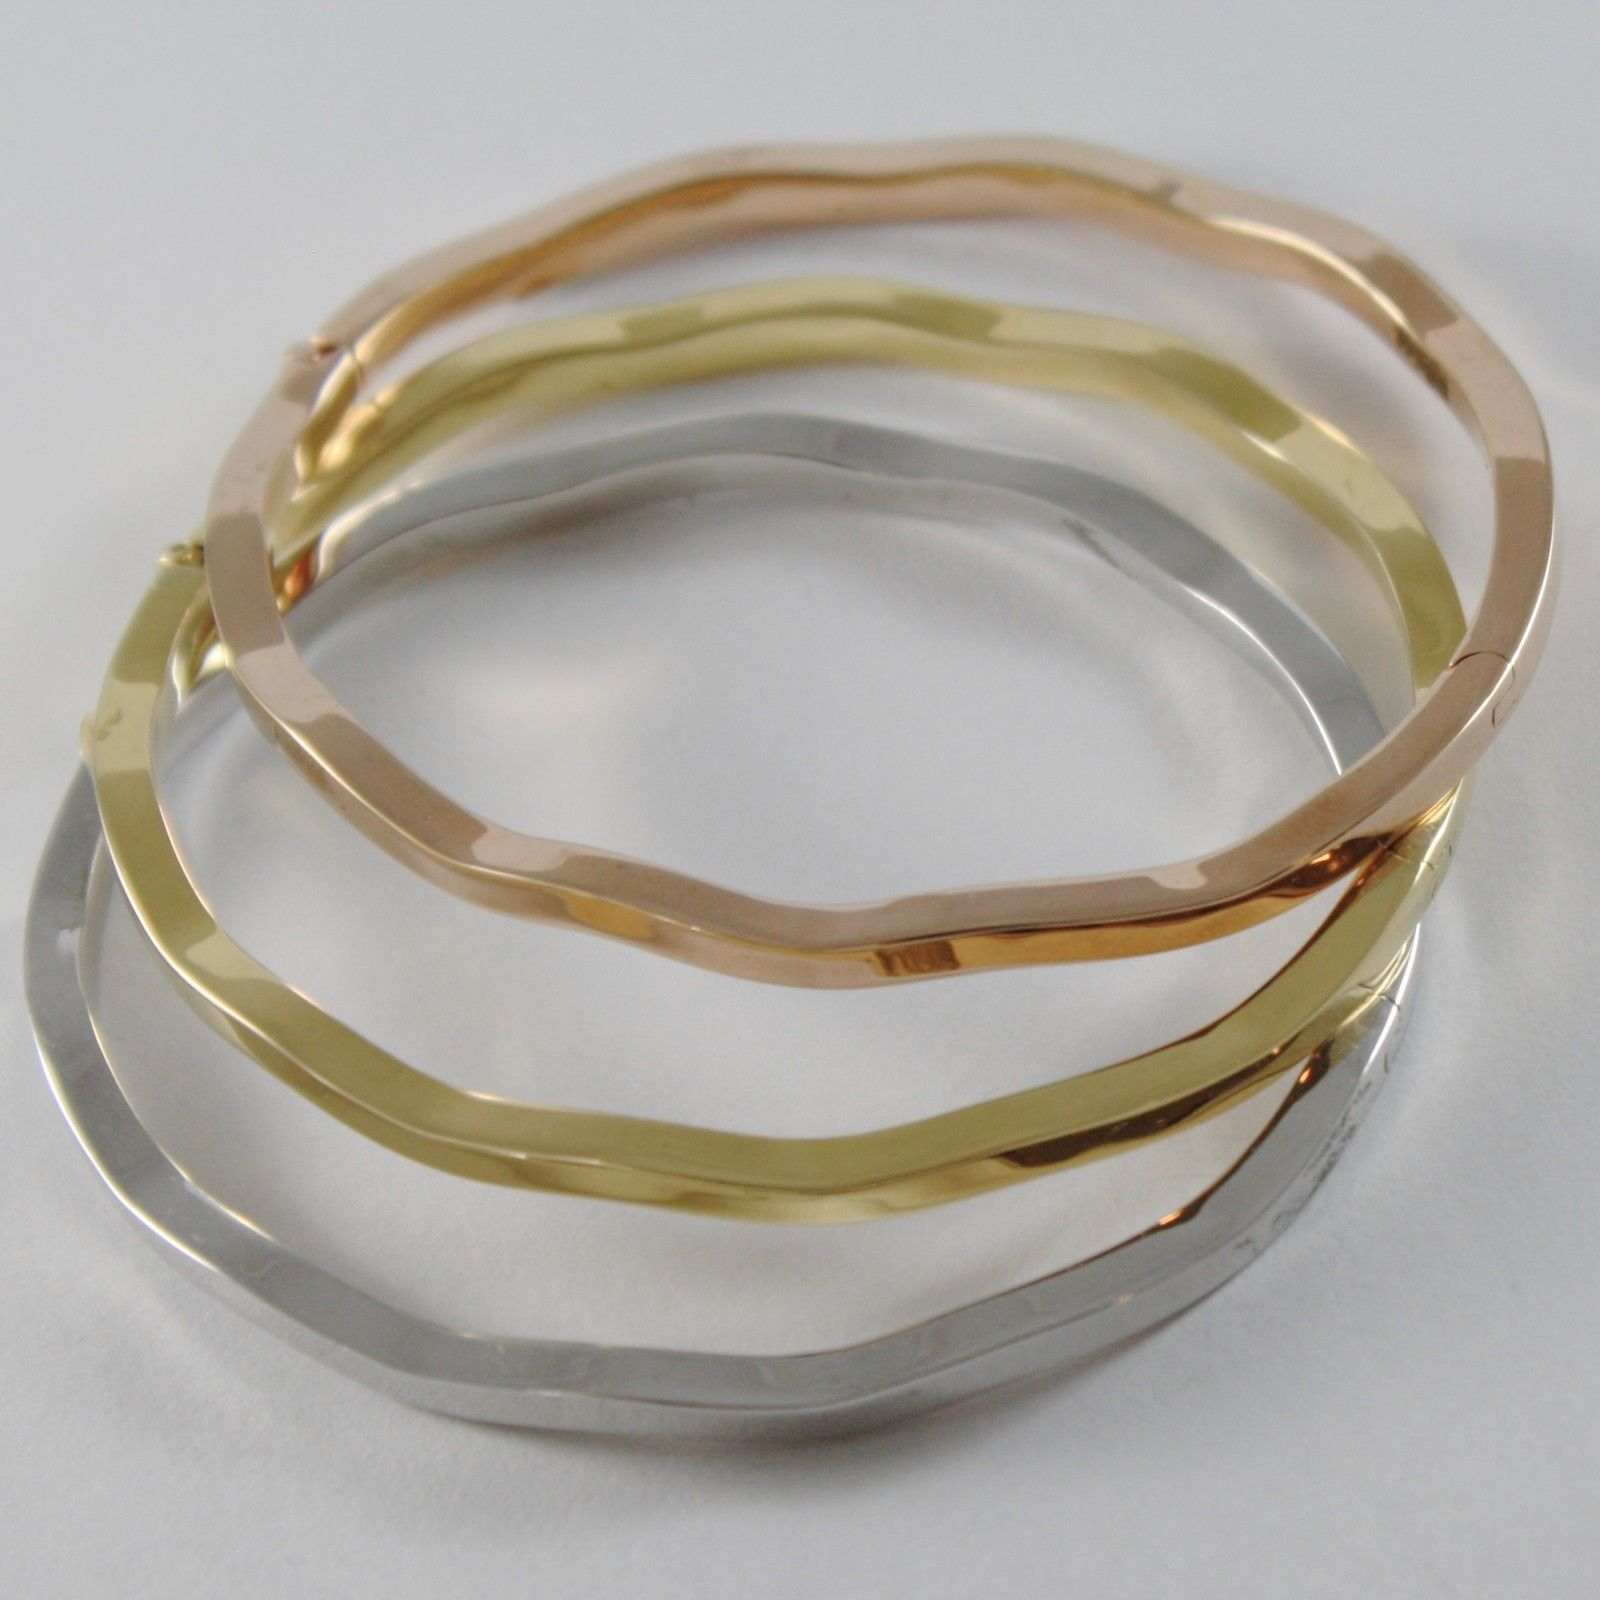 THREE 18K WHITE ROSE YELLOW GOLD BANGLE ONDULATE RIGID BRACELETS MADE IN ITALY